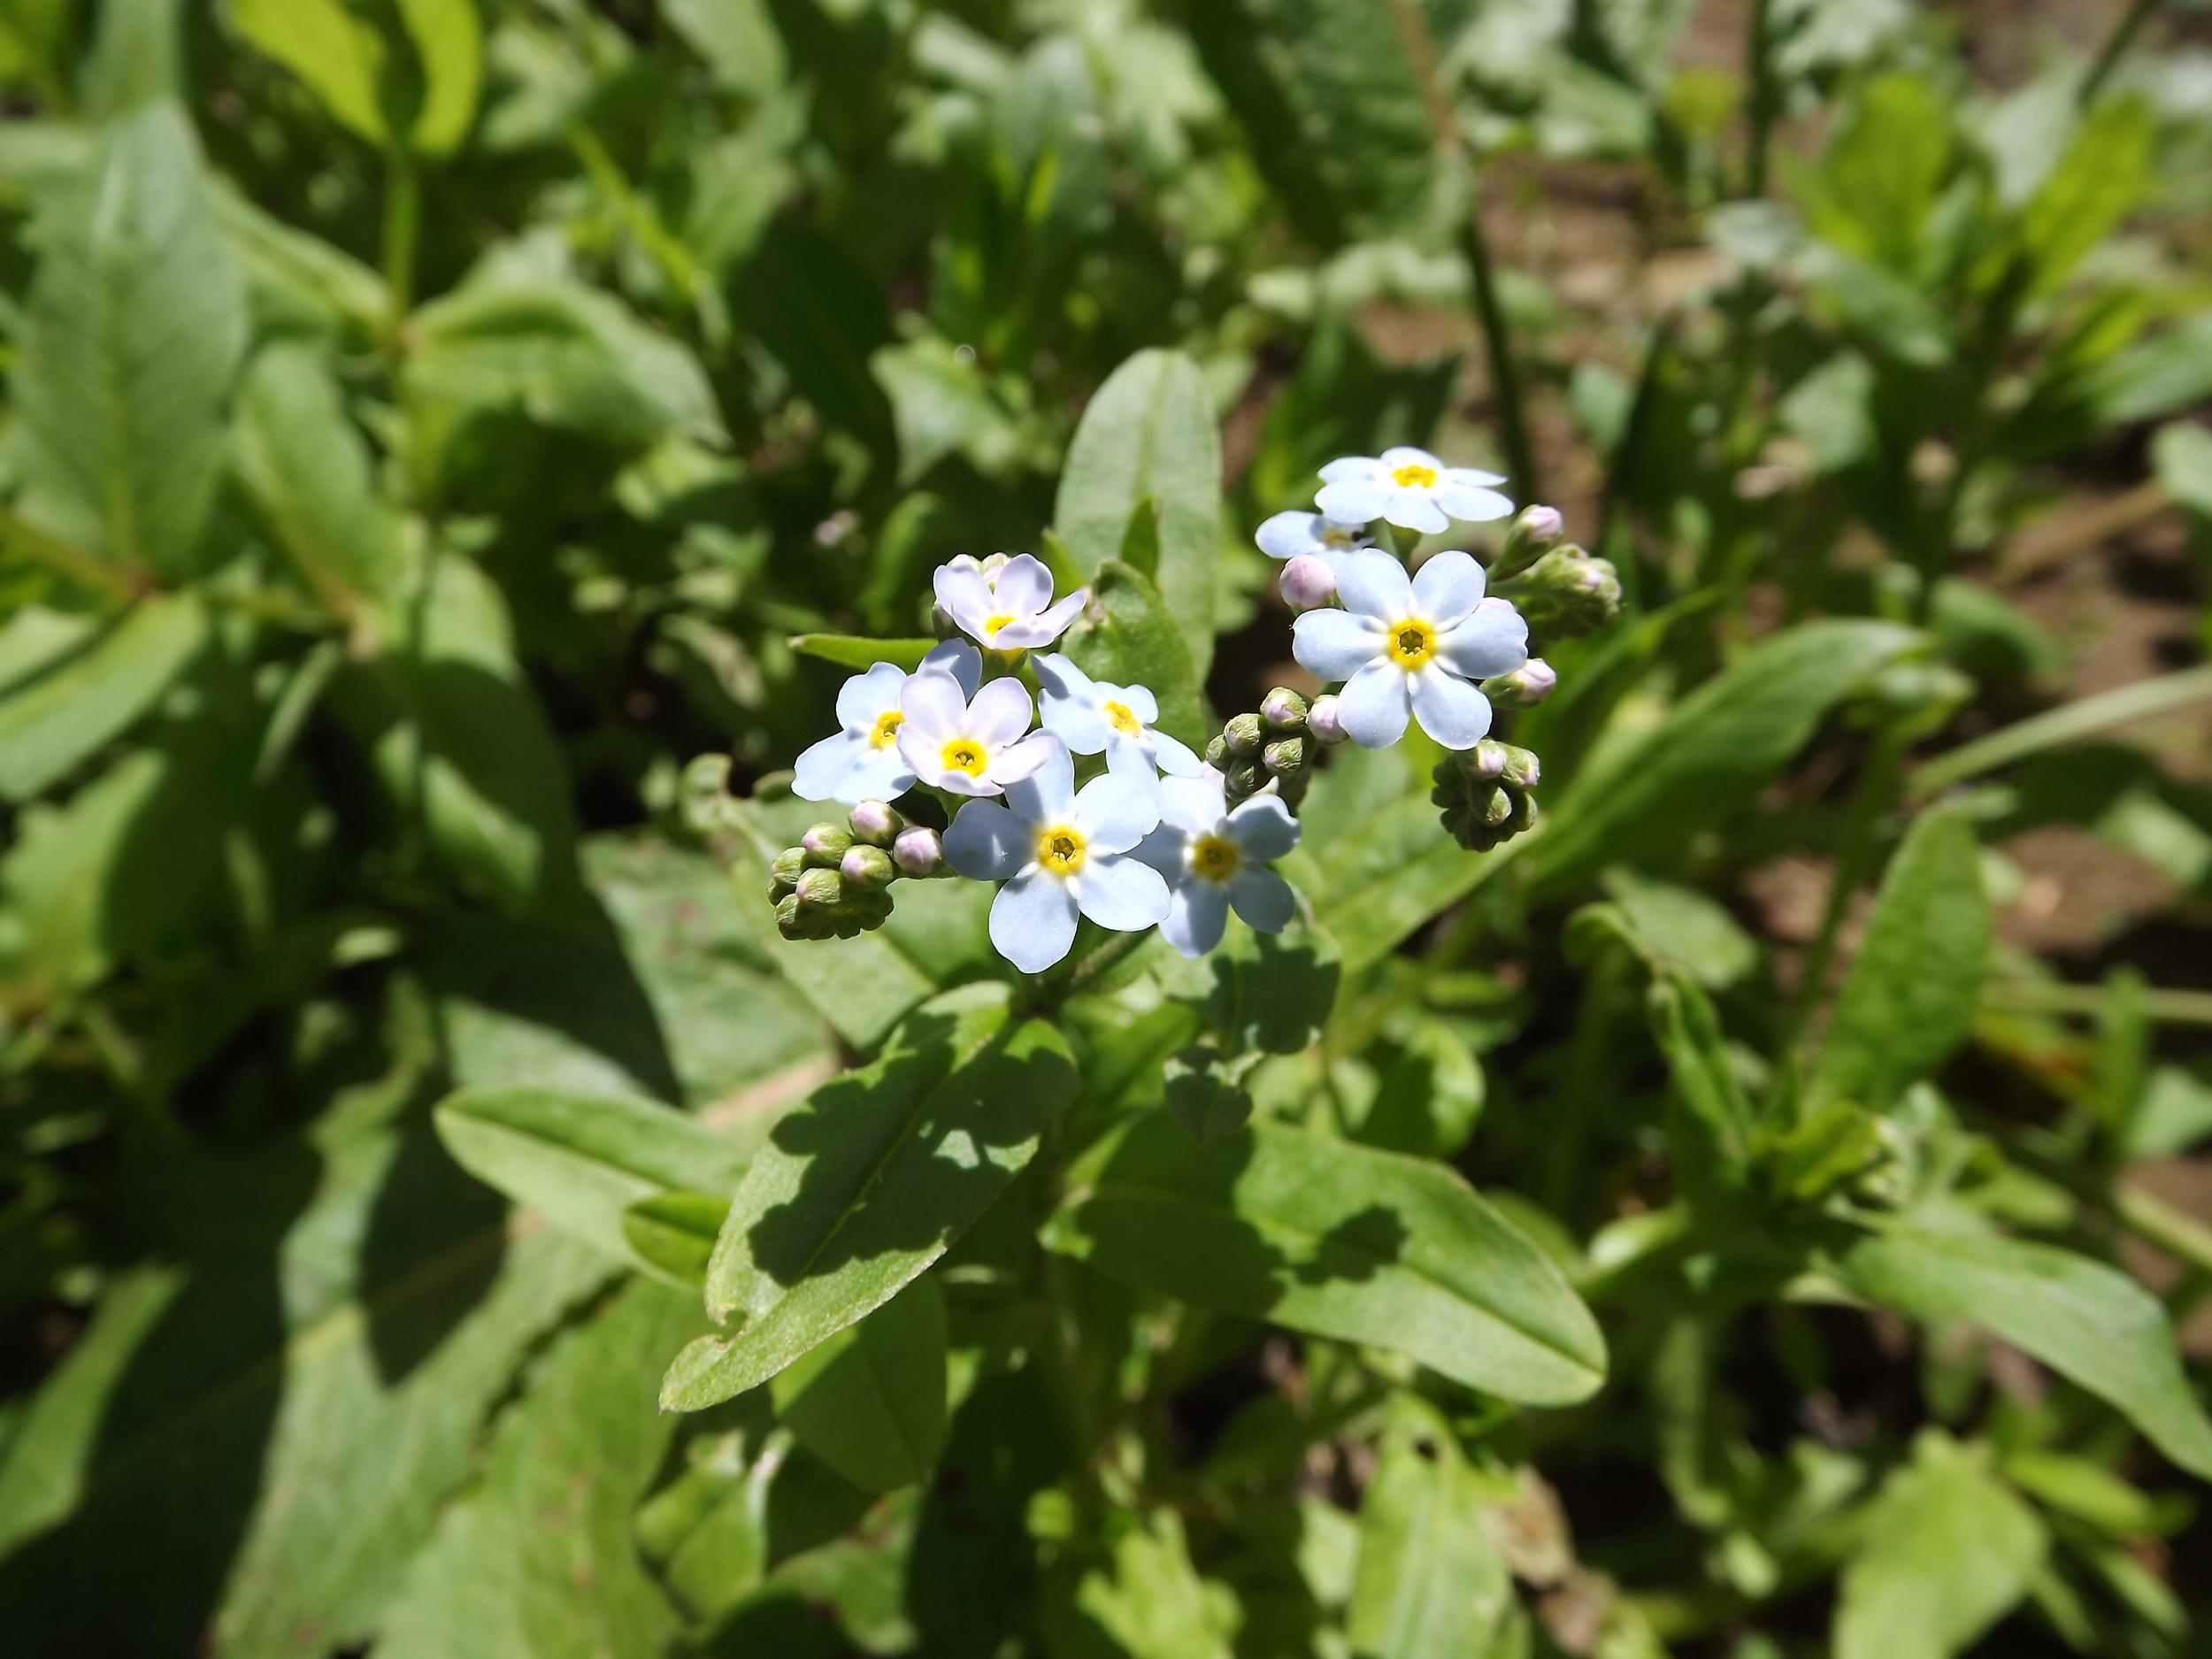 Small Flower Forget-Me-Nots ( Myosotis laxa ) - I'm starting to see more and more Small Flower Forget-Me-Nots along the stream and even on small alluvial islands formed in the stream itself. These tiny blue flowers are very pretty and one of the few Forget-Me-Nots native to our area. They are most definitely water lovers and can even grow in shallow water.